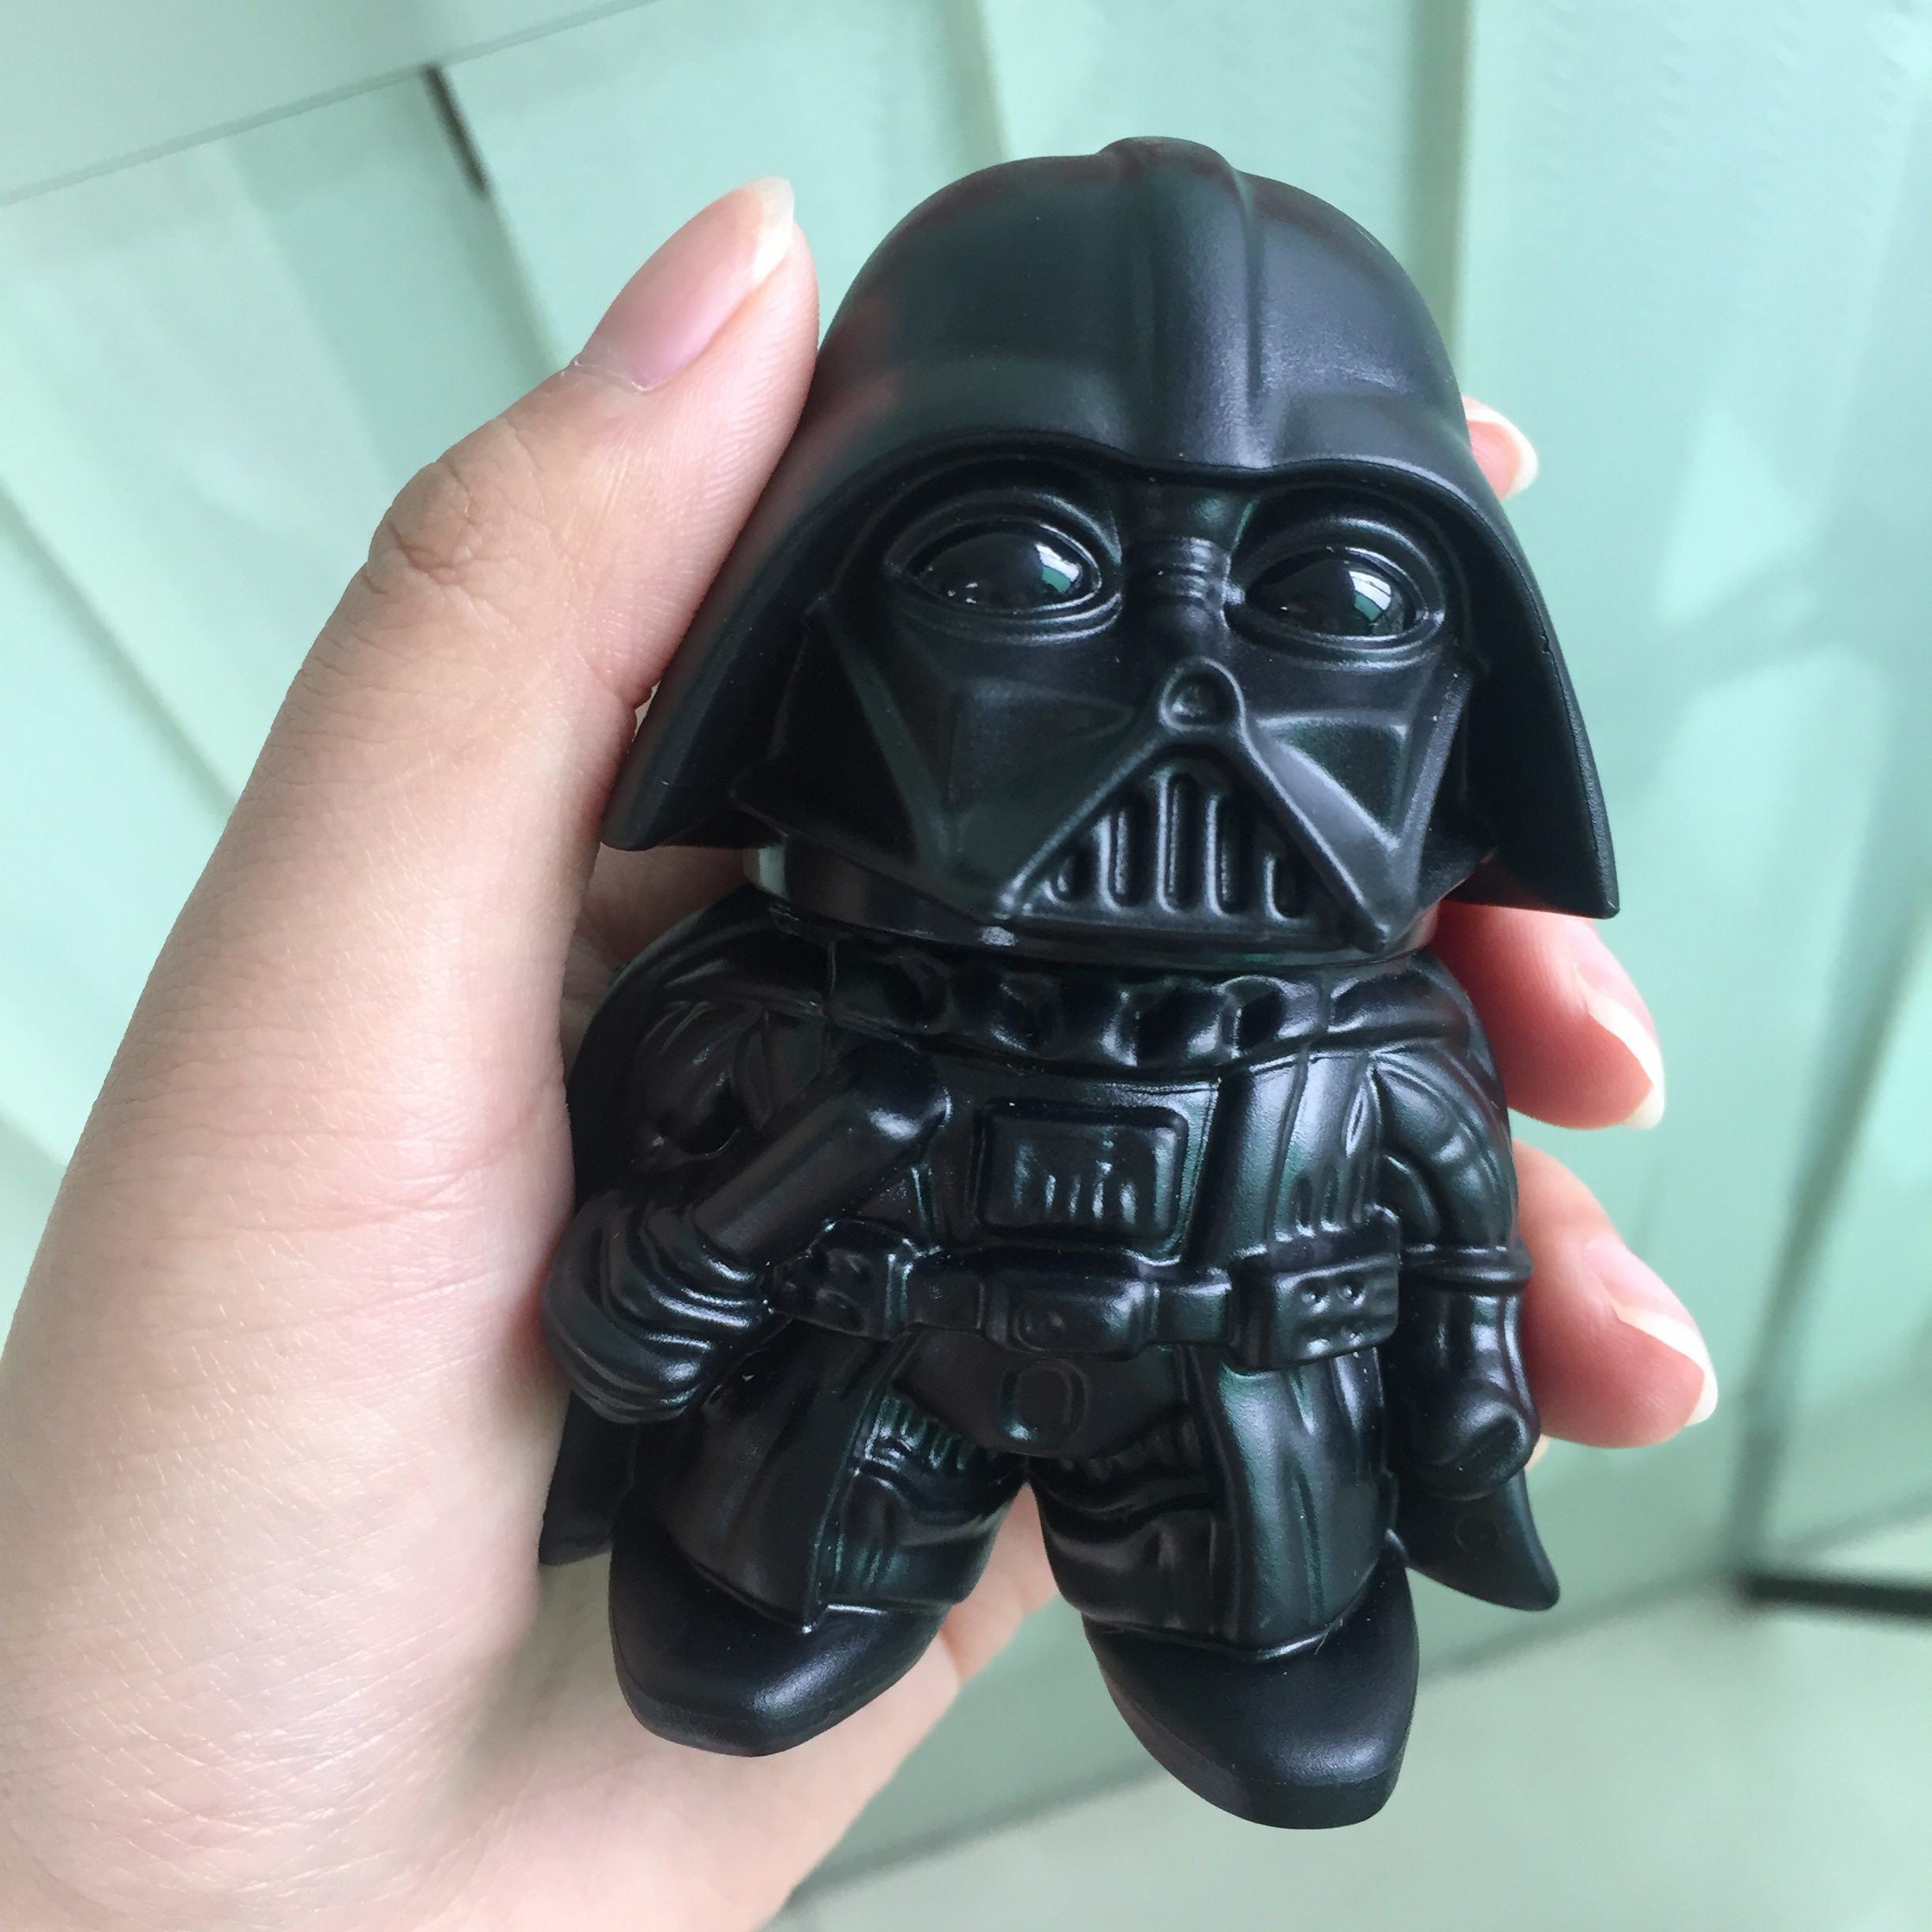 Newest Star Wars Black Warrior Darth Vader toy Metal Zinc Alloy Herb Grinder Tobacco Spice Crusher Accessories plywood